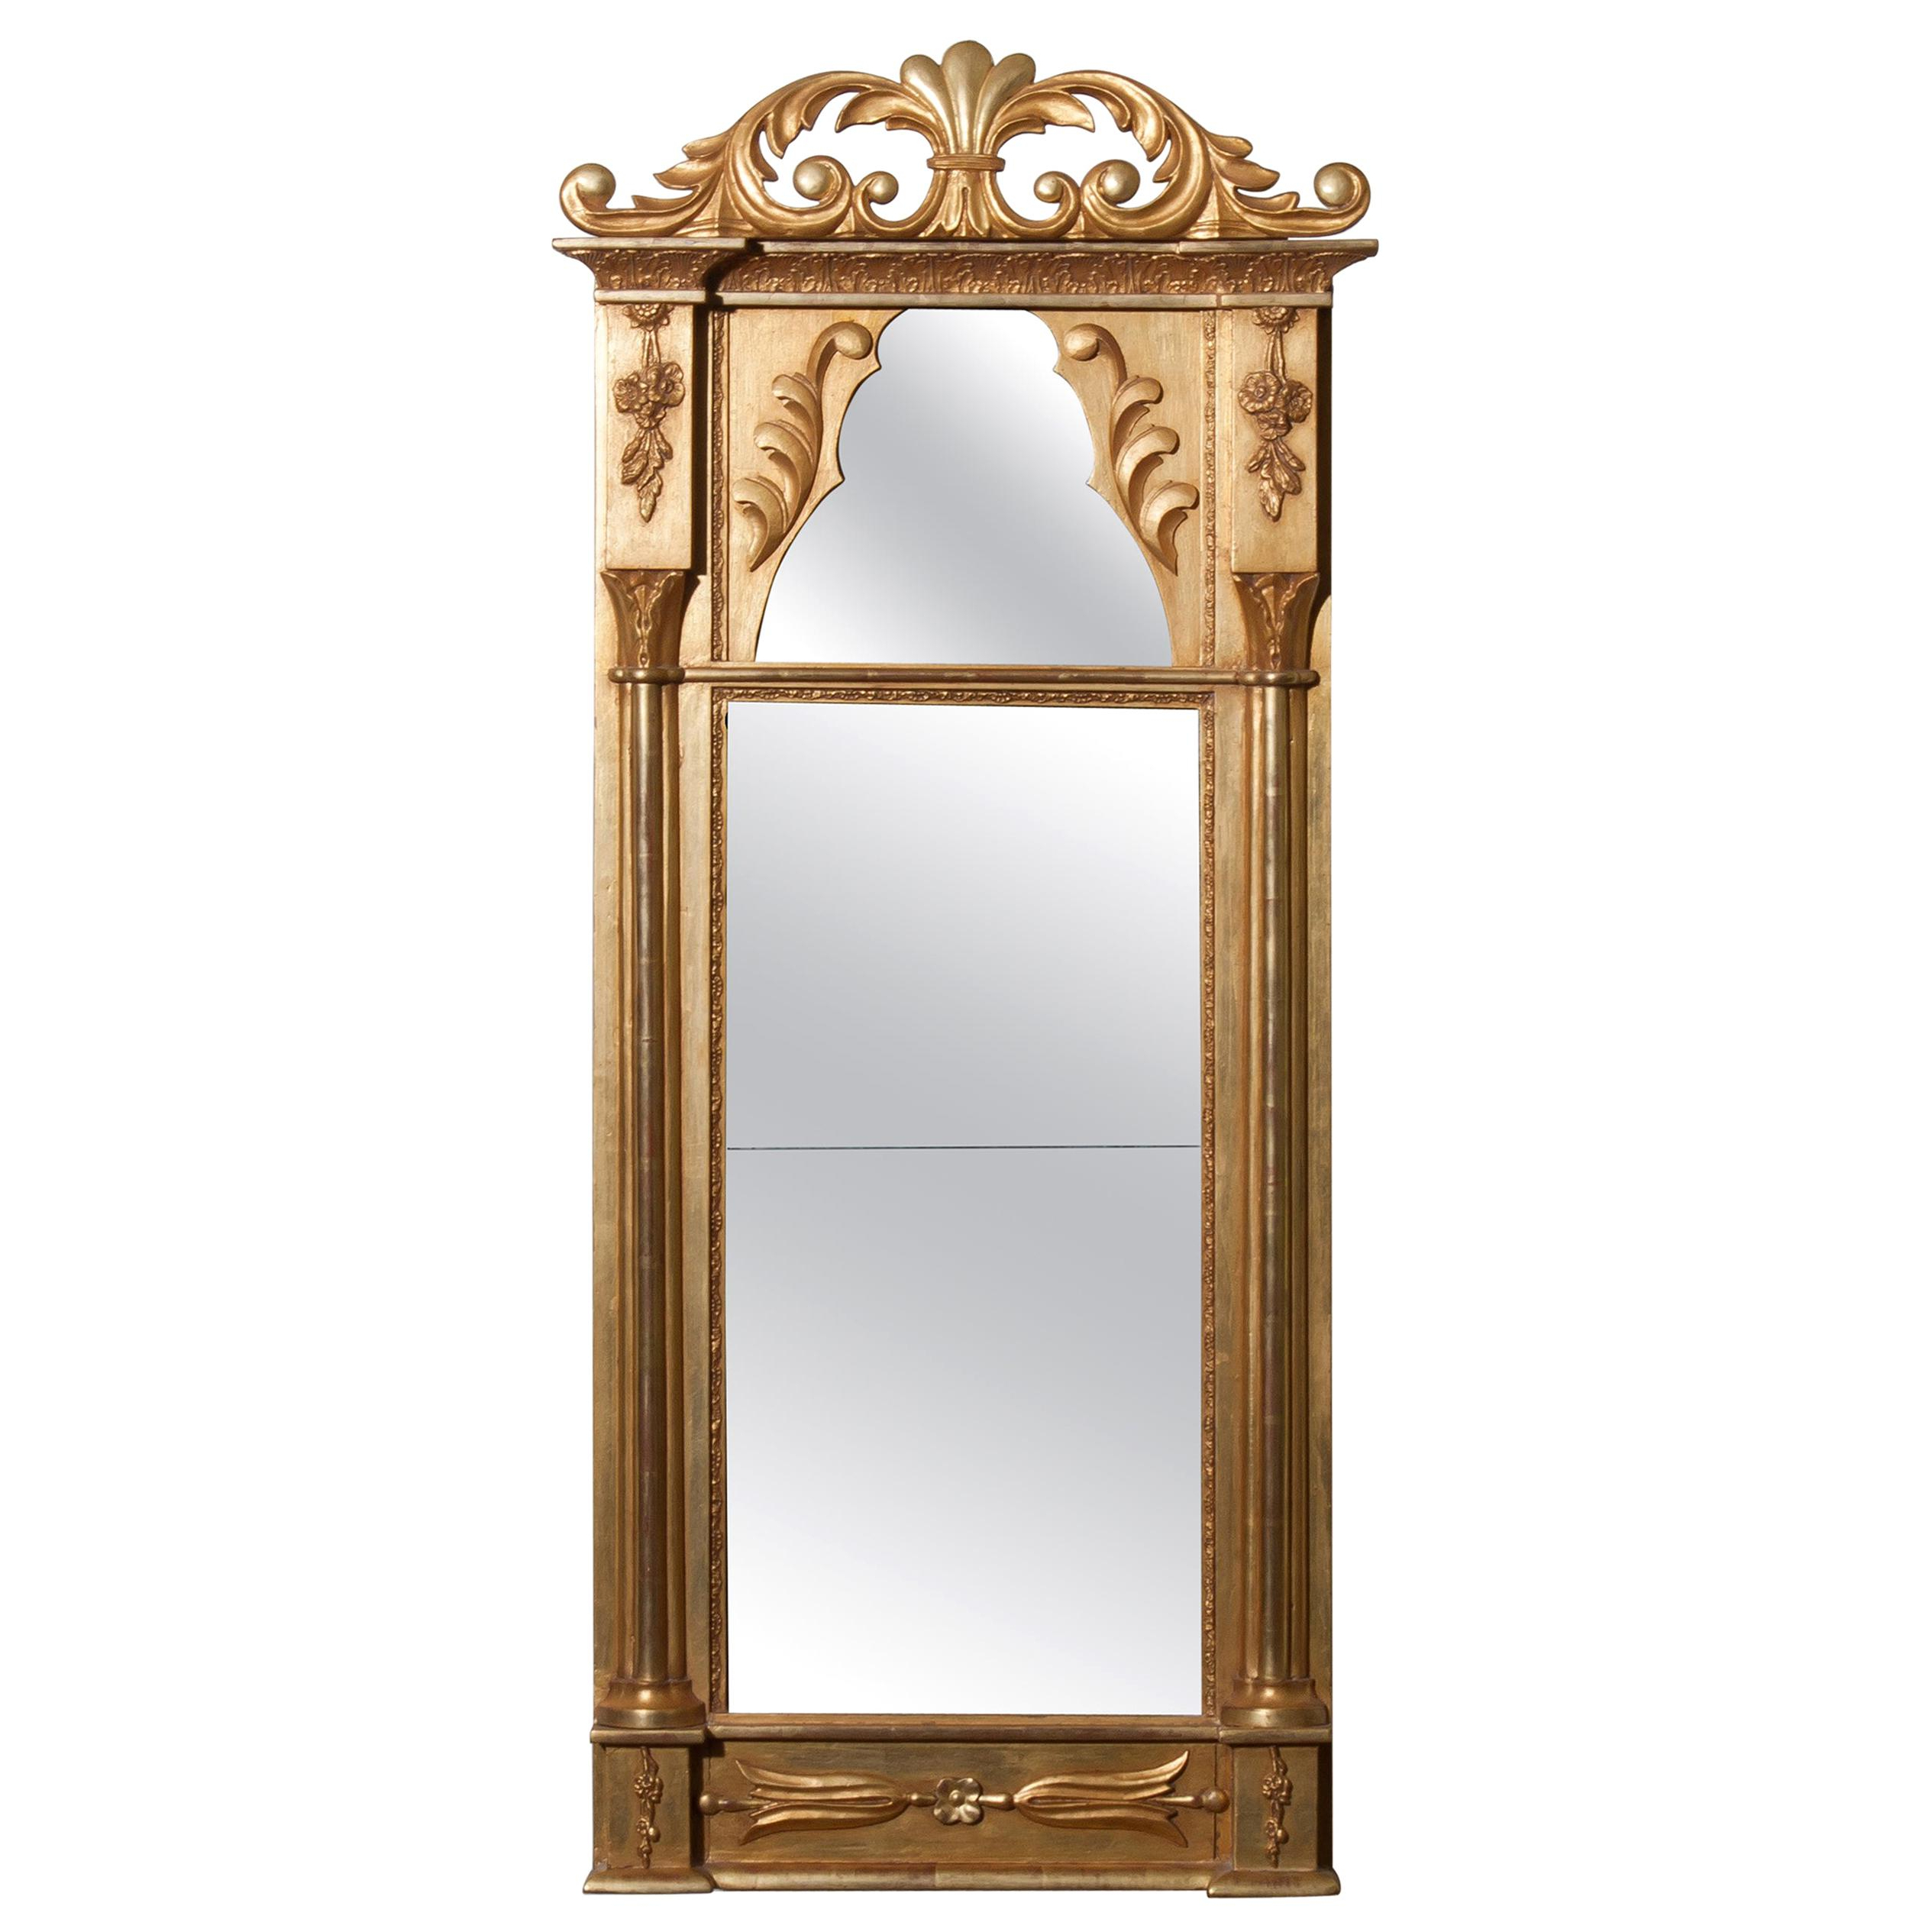 19th Century Wall Mirrors – 2,836 For Sale At 1stdibs For Most Up To Date Modern & Contemporary Beveled Overmantel Mirrors (View 20 of 20)